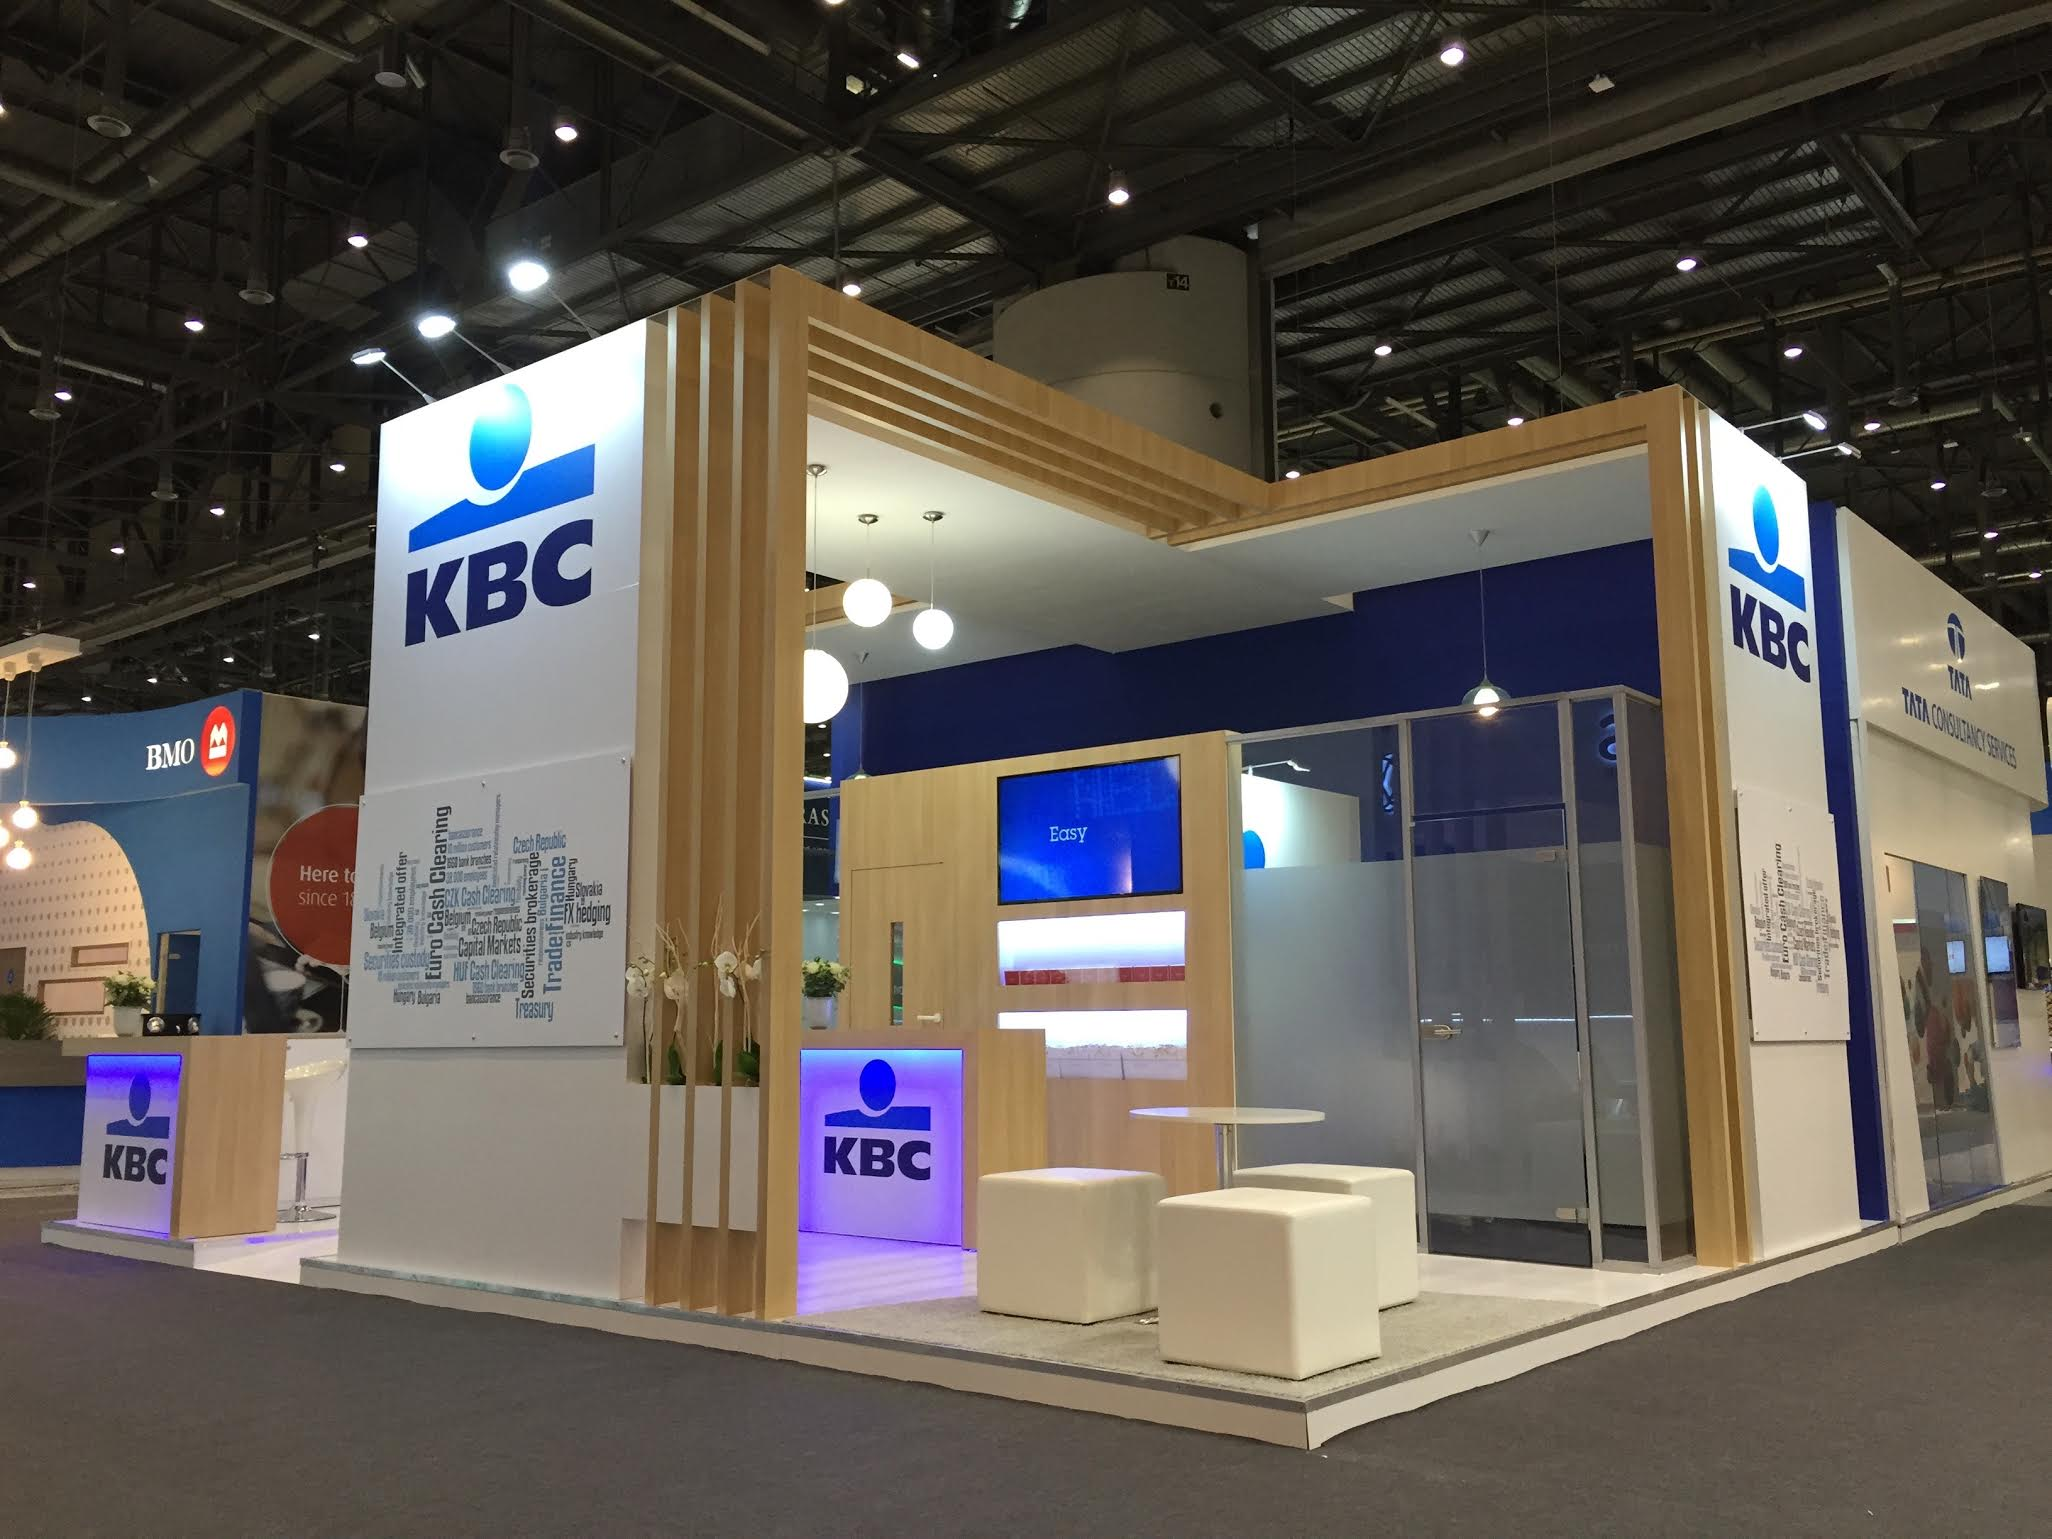 Exhibition Stand Agency : Kbc at sibos the ice agency exhibition stand design and management